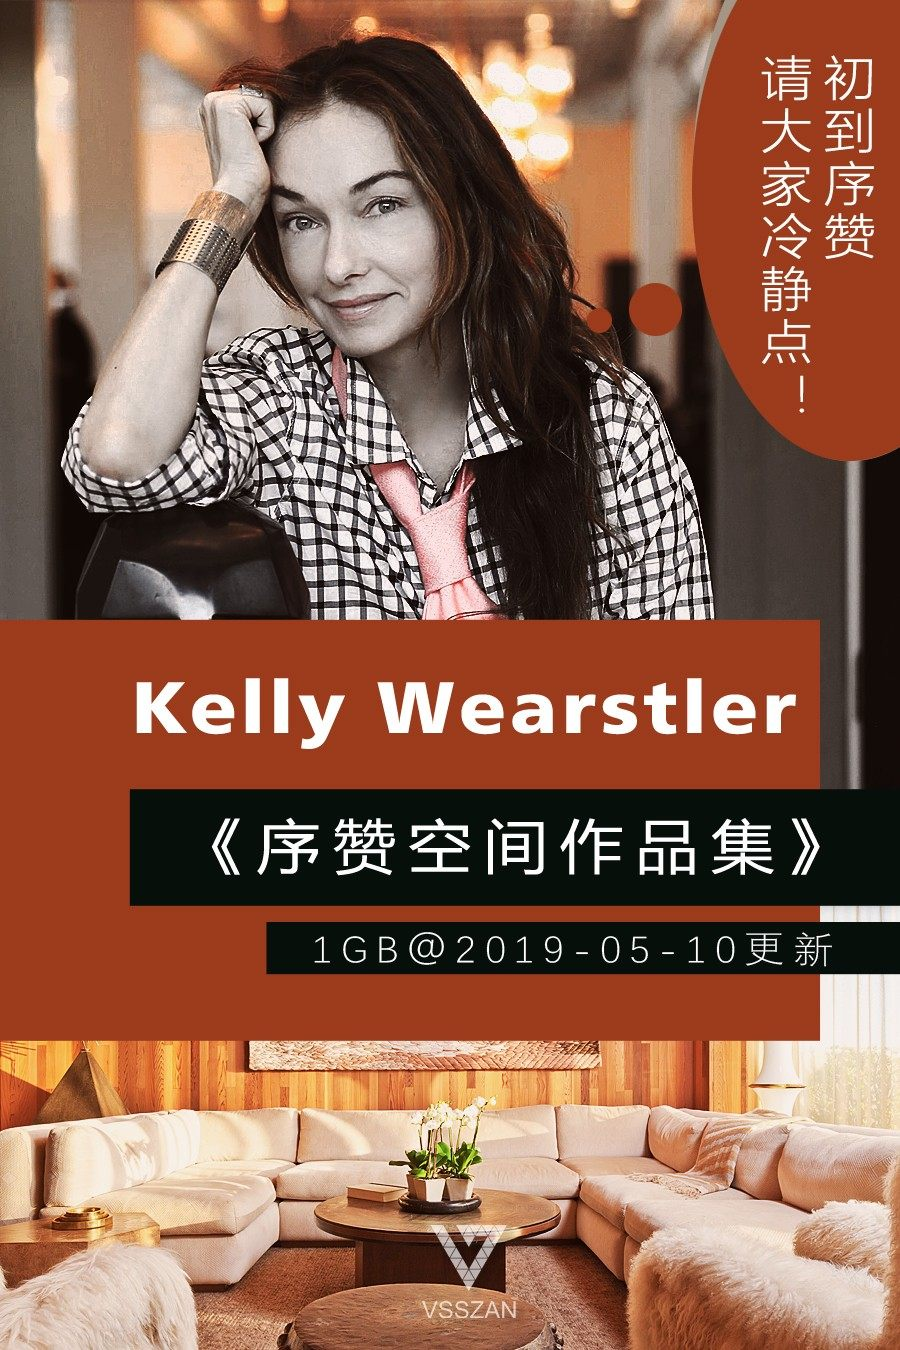 ad_Kelly-Wearstler.jpg